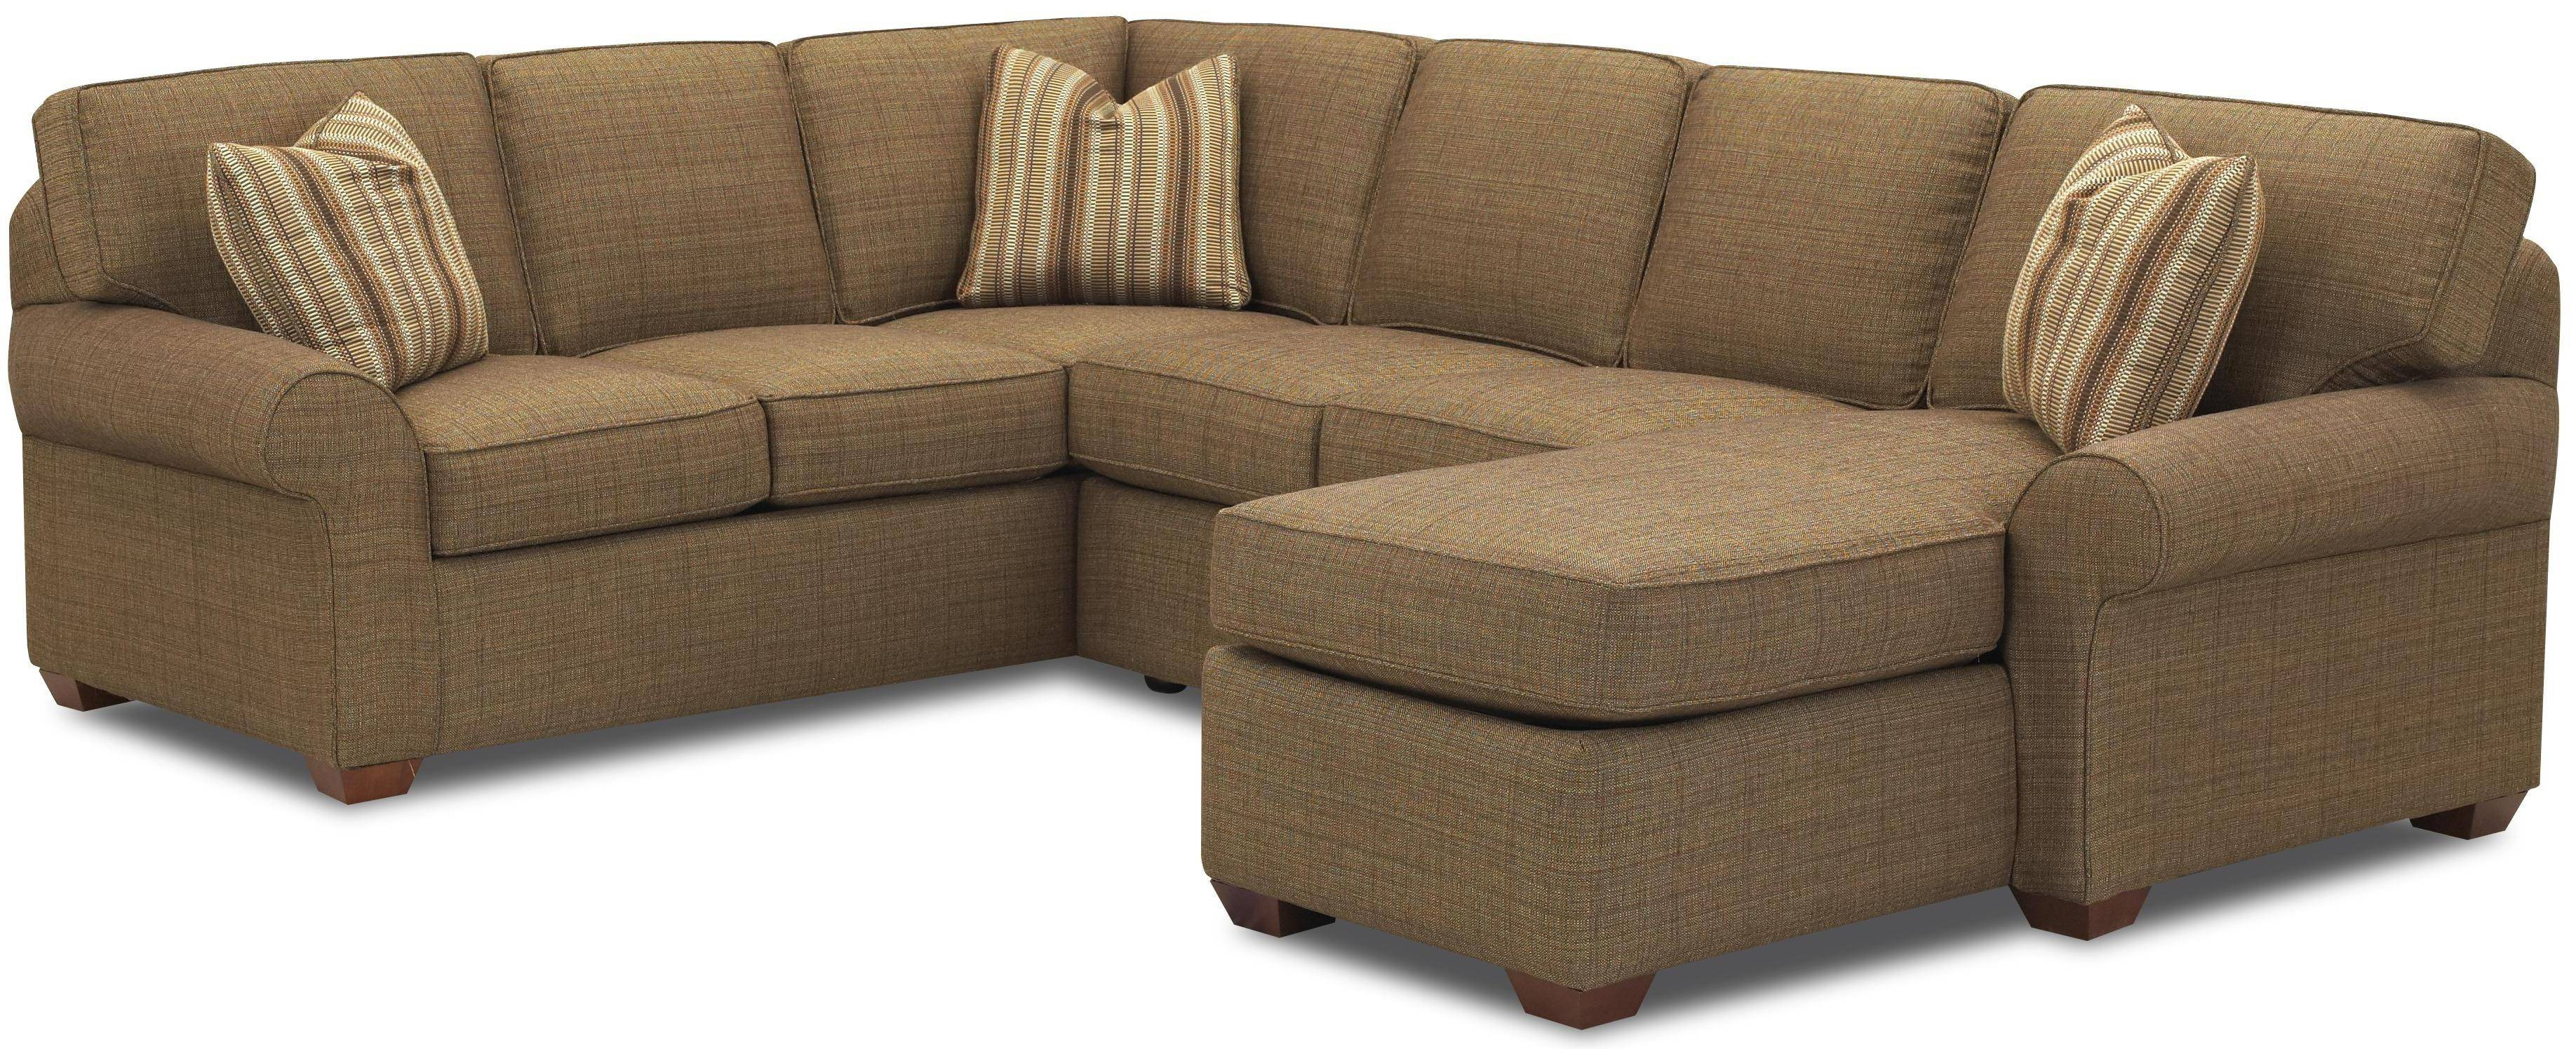 Cool Small Sectional Sofa With Chaise Lounge 74 With Additional inside Small 2 Piece Sectional Sofas (Image 9 of 30)